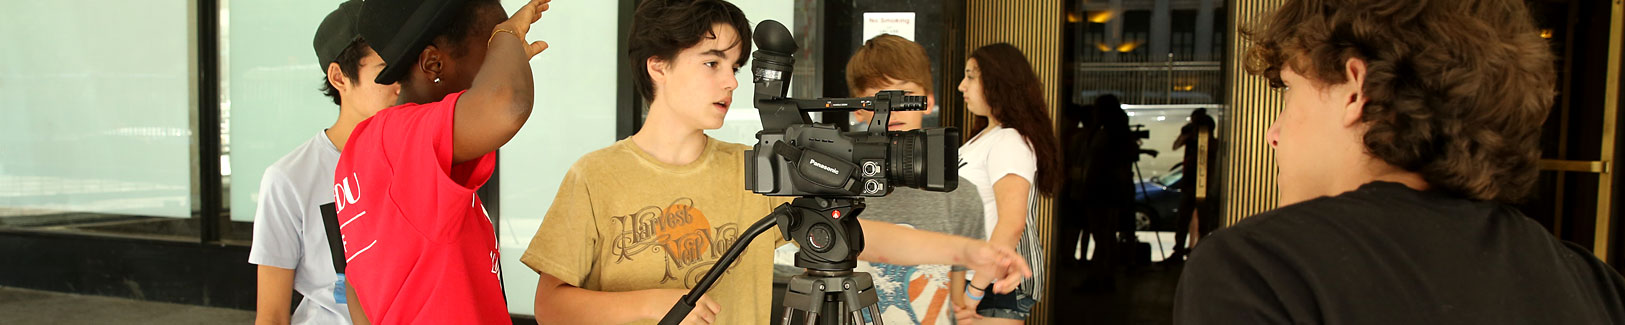 Learn more about our teen and kids film camps